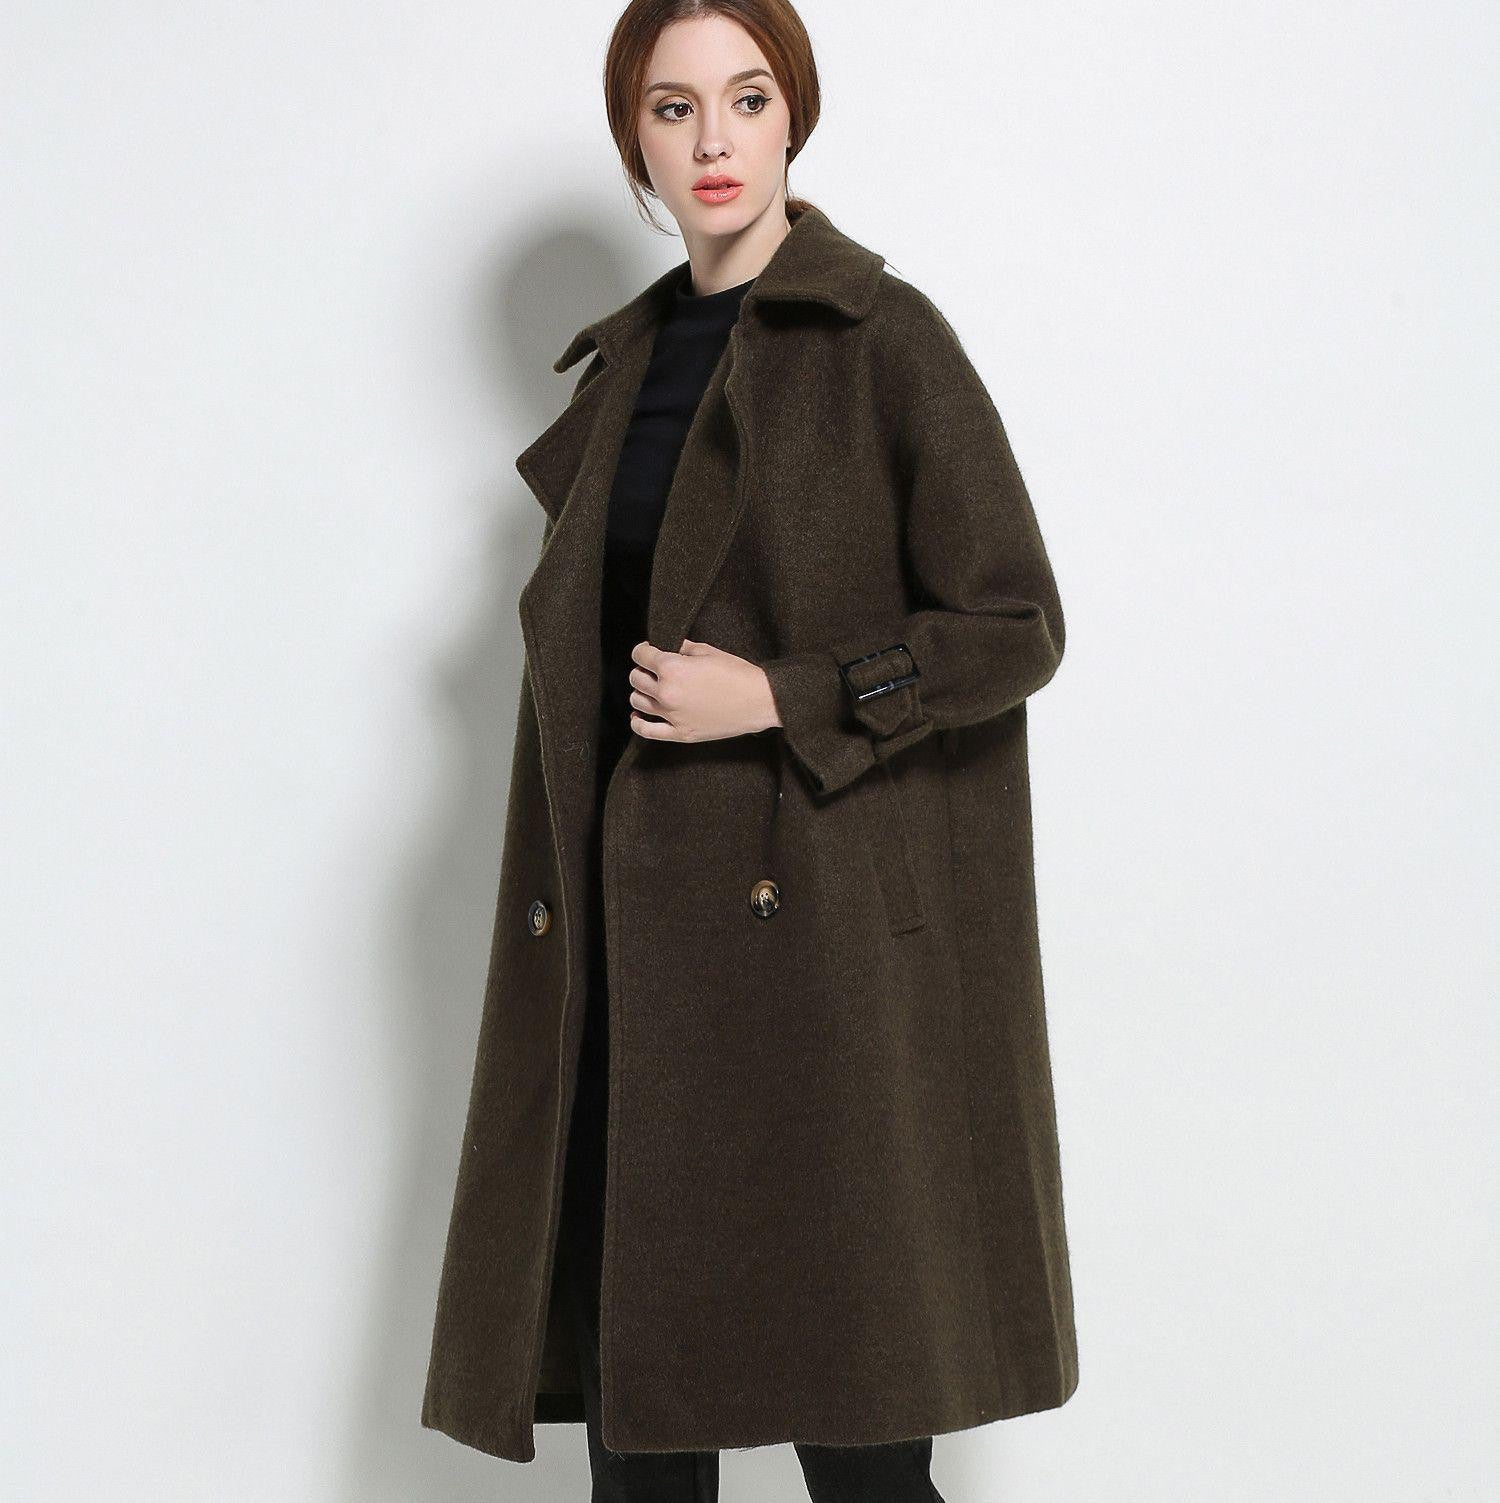 pIMC10066 Solid Color Wool Coat with Lapels